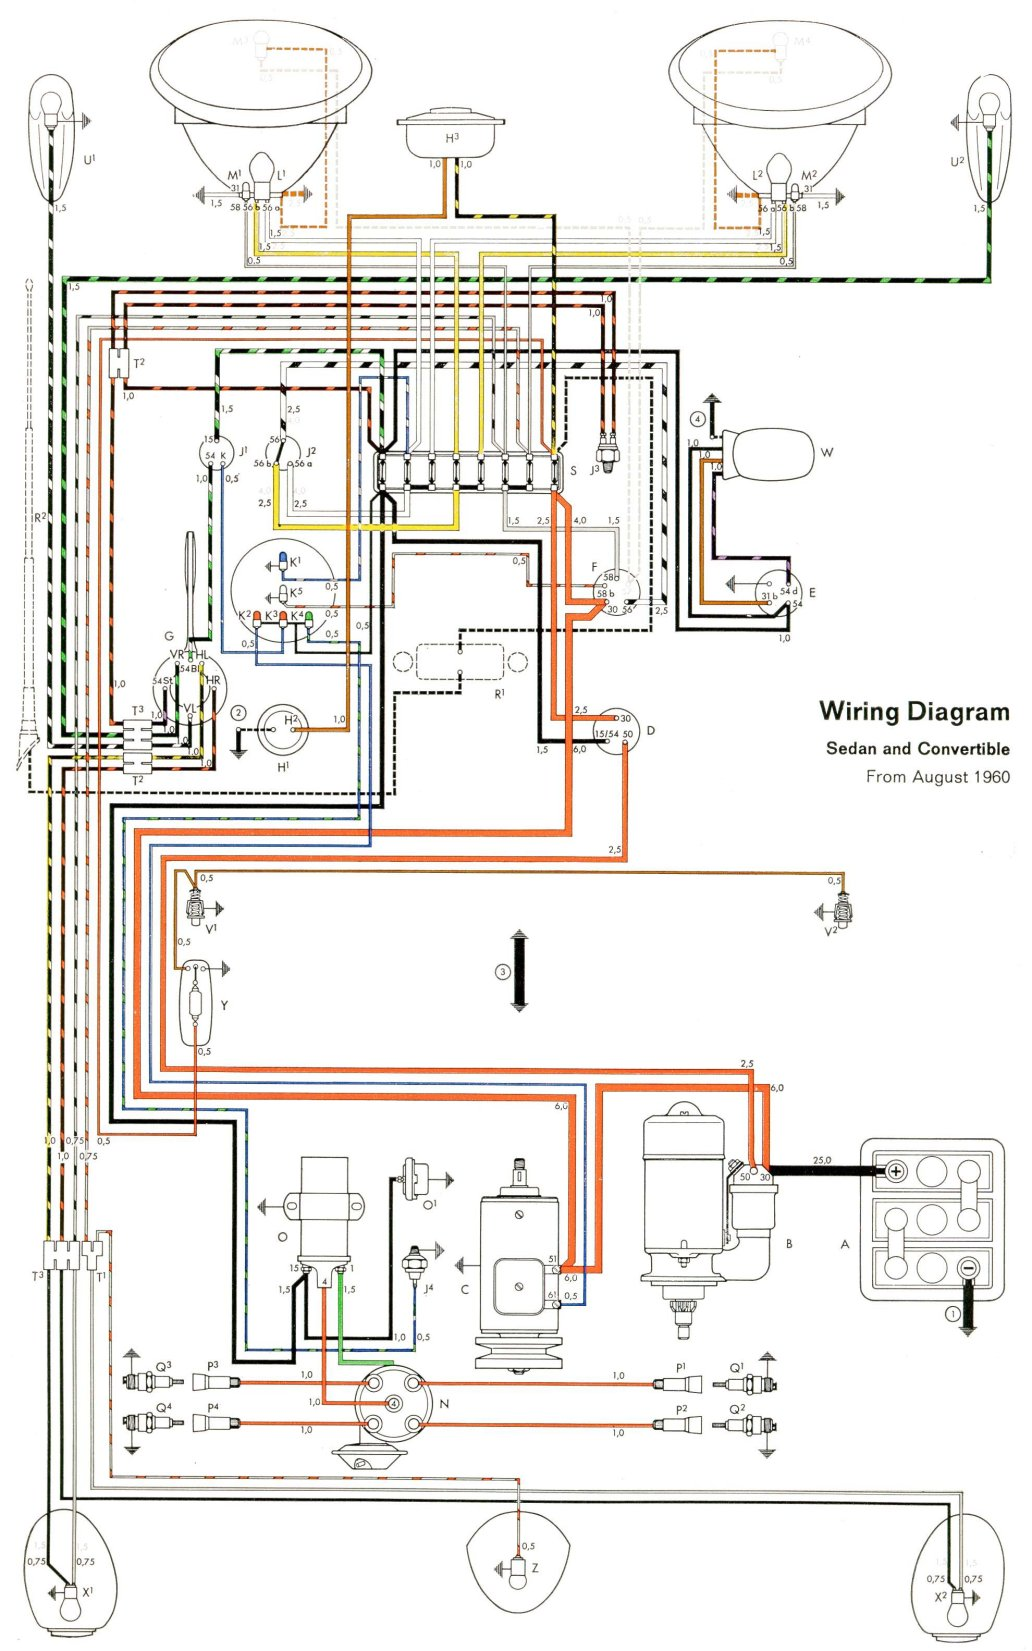 bug_61 thesamba com type 1 wiring diagrams vw ignition wiring diagram at soozxer.org